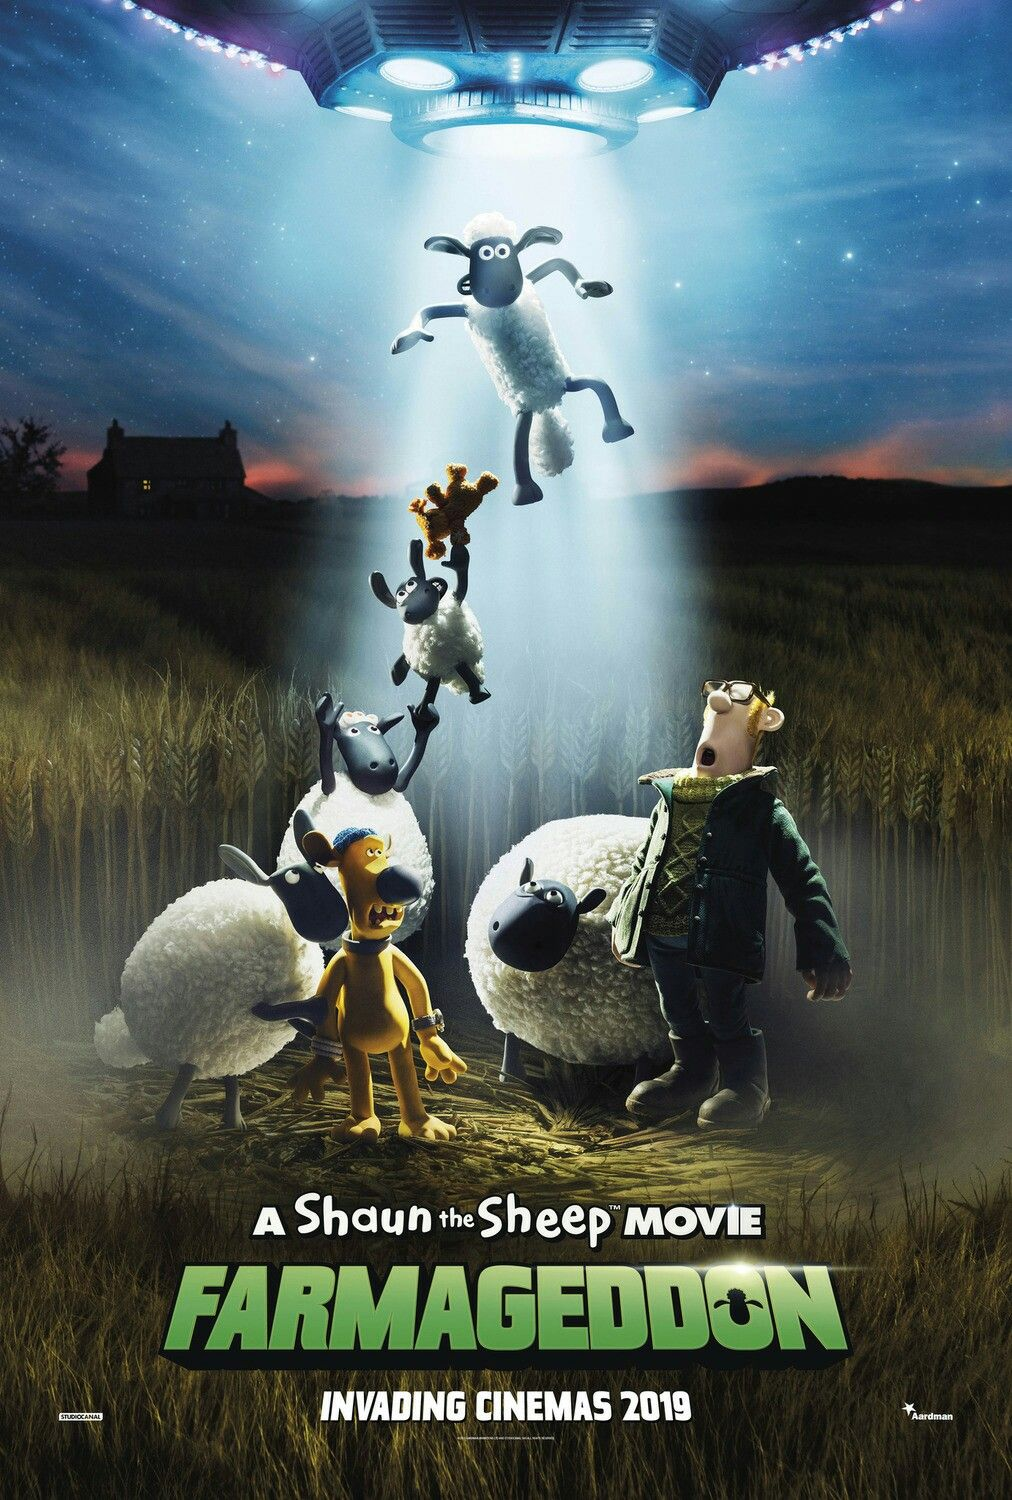 The Poster For The Animation Shaun The Sheep Movie Farmageddon